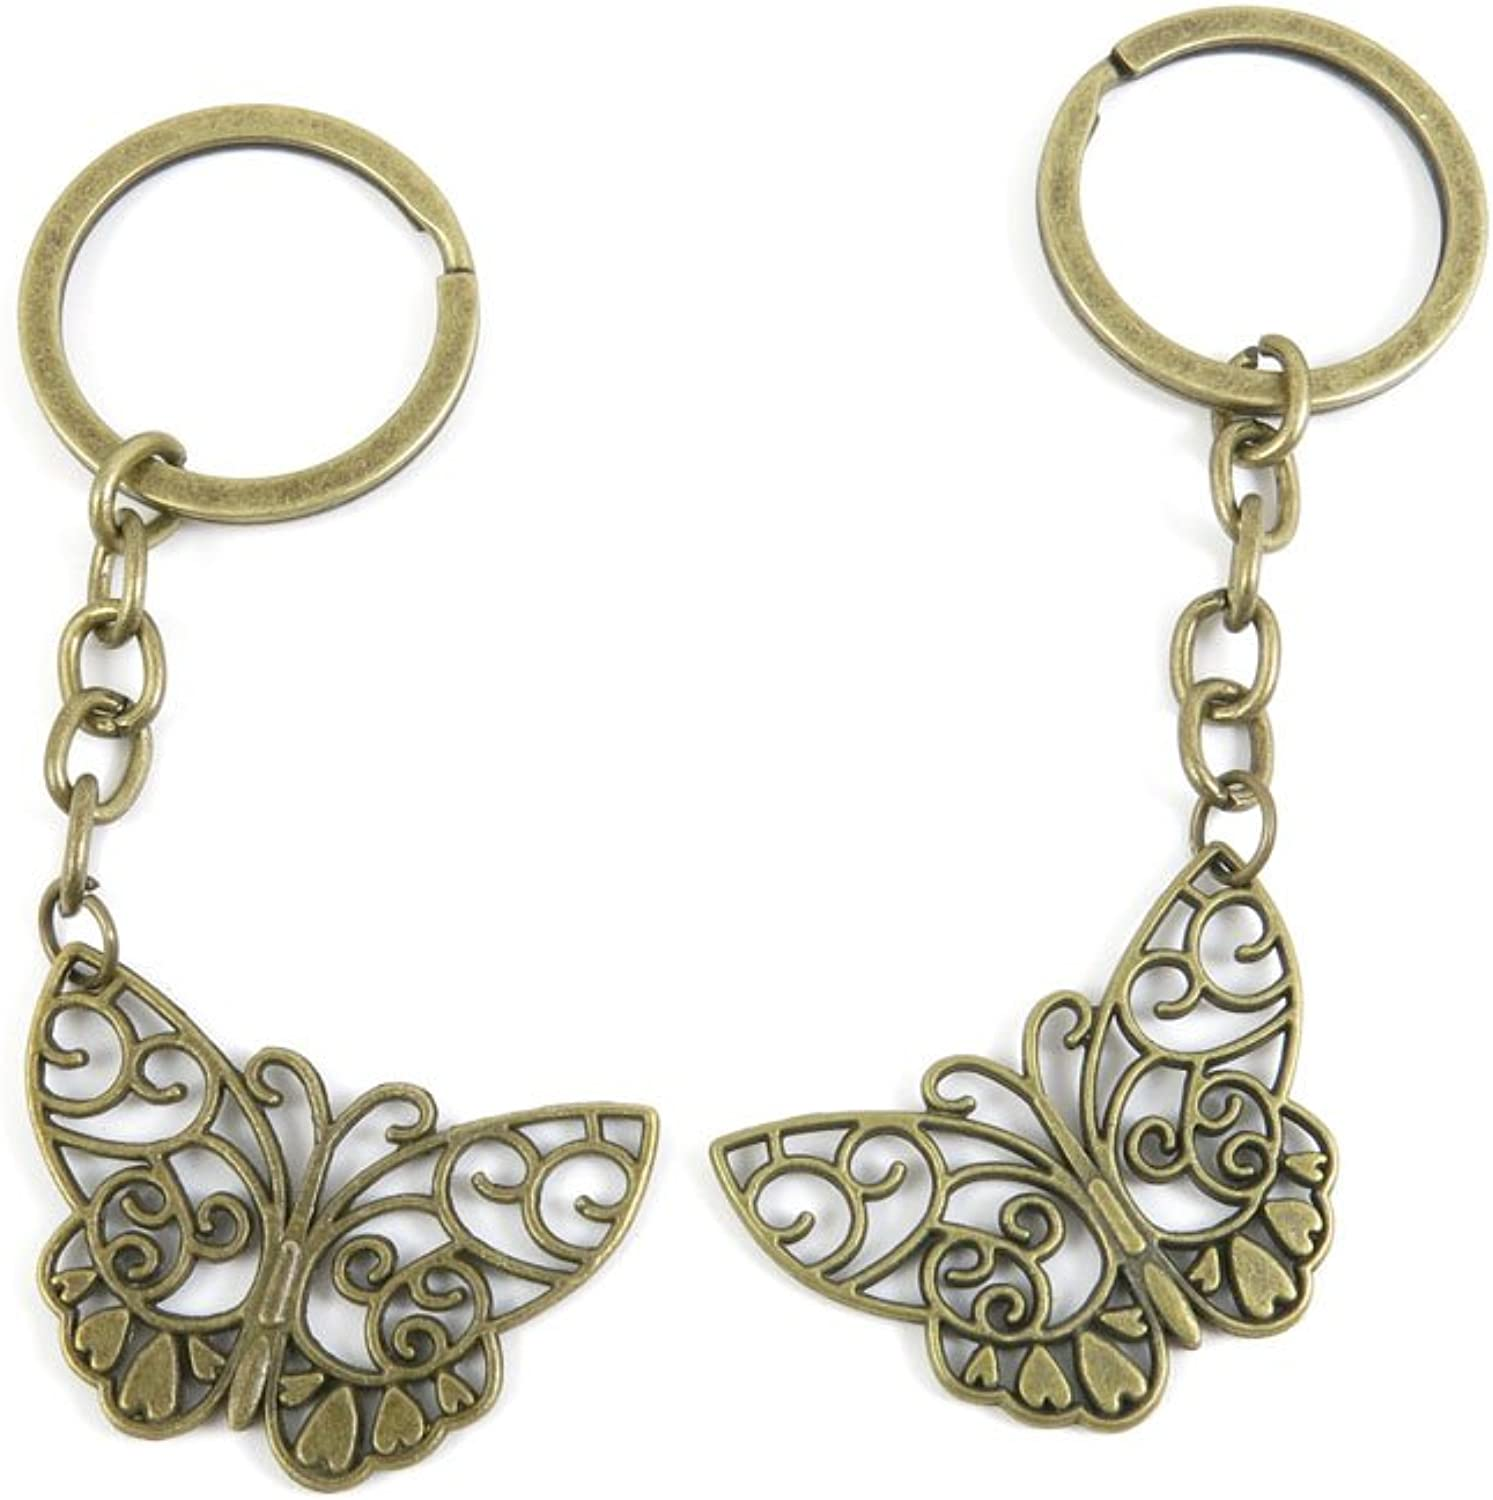 80 PCS Keyring Car Door Key Ring Tag Chain Keychain Wholesale Suppliers Charms Handmade I0LC9 Butterfly